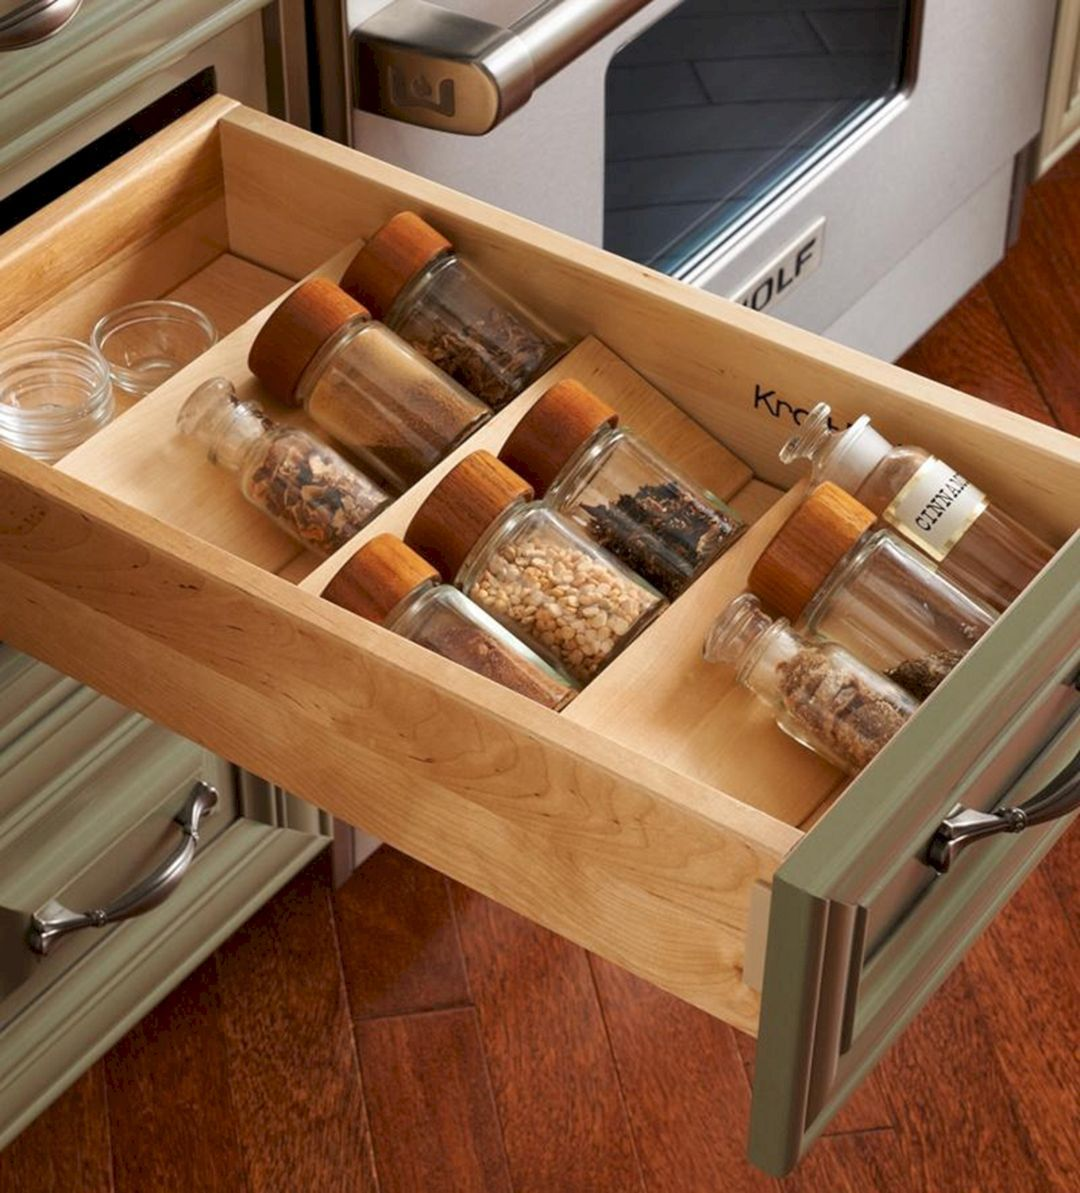 Incredible Kitchen Remodeling Ideas: 25+ Incredible DIY Kitchen Storage Ideas For Small Spaces